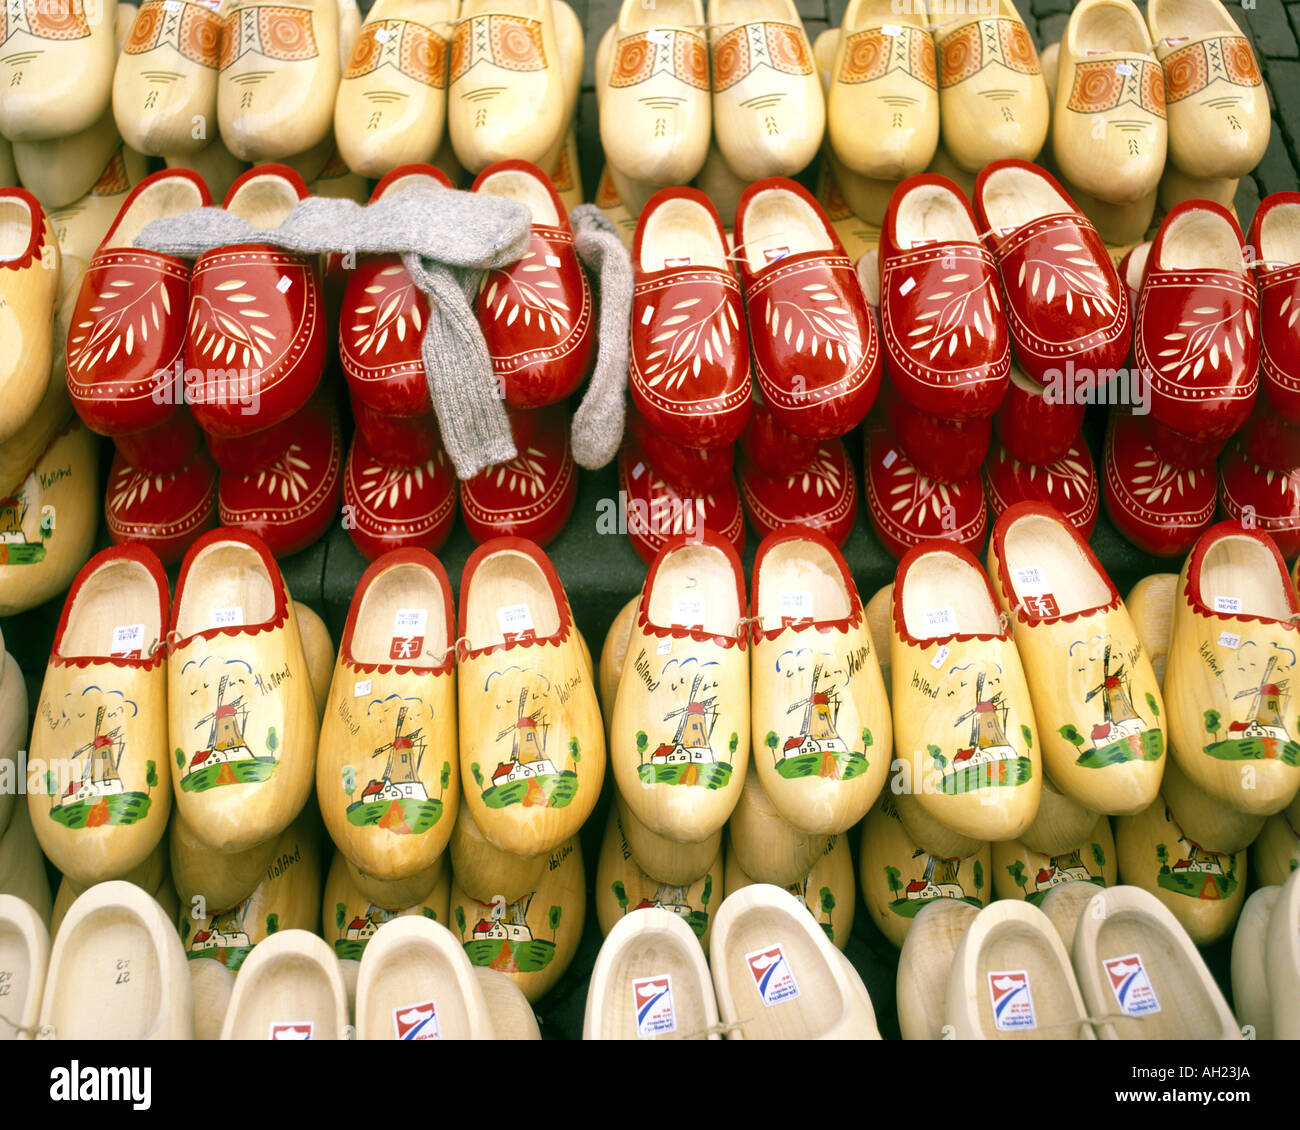 NL - Niederlande: Traditionelle Clogs auf dem Display Stockbild